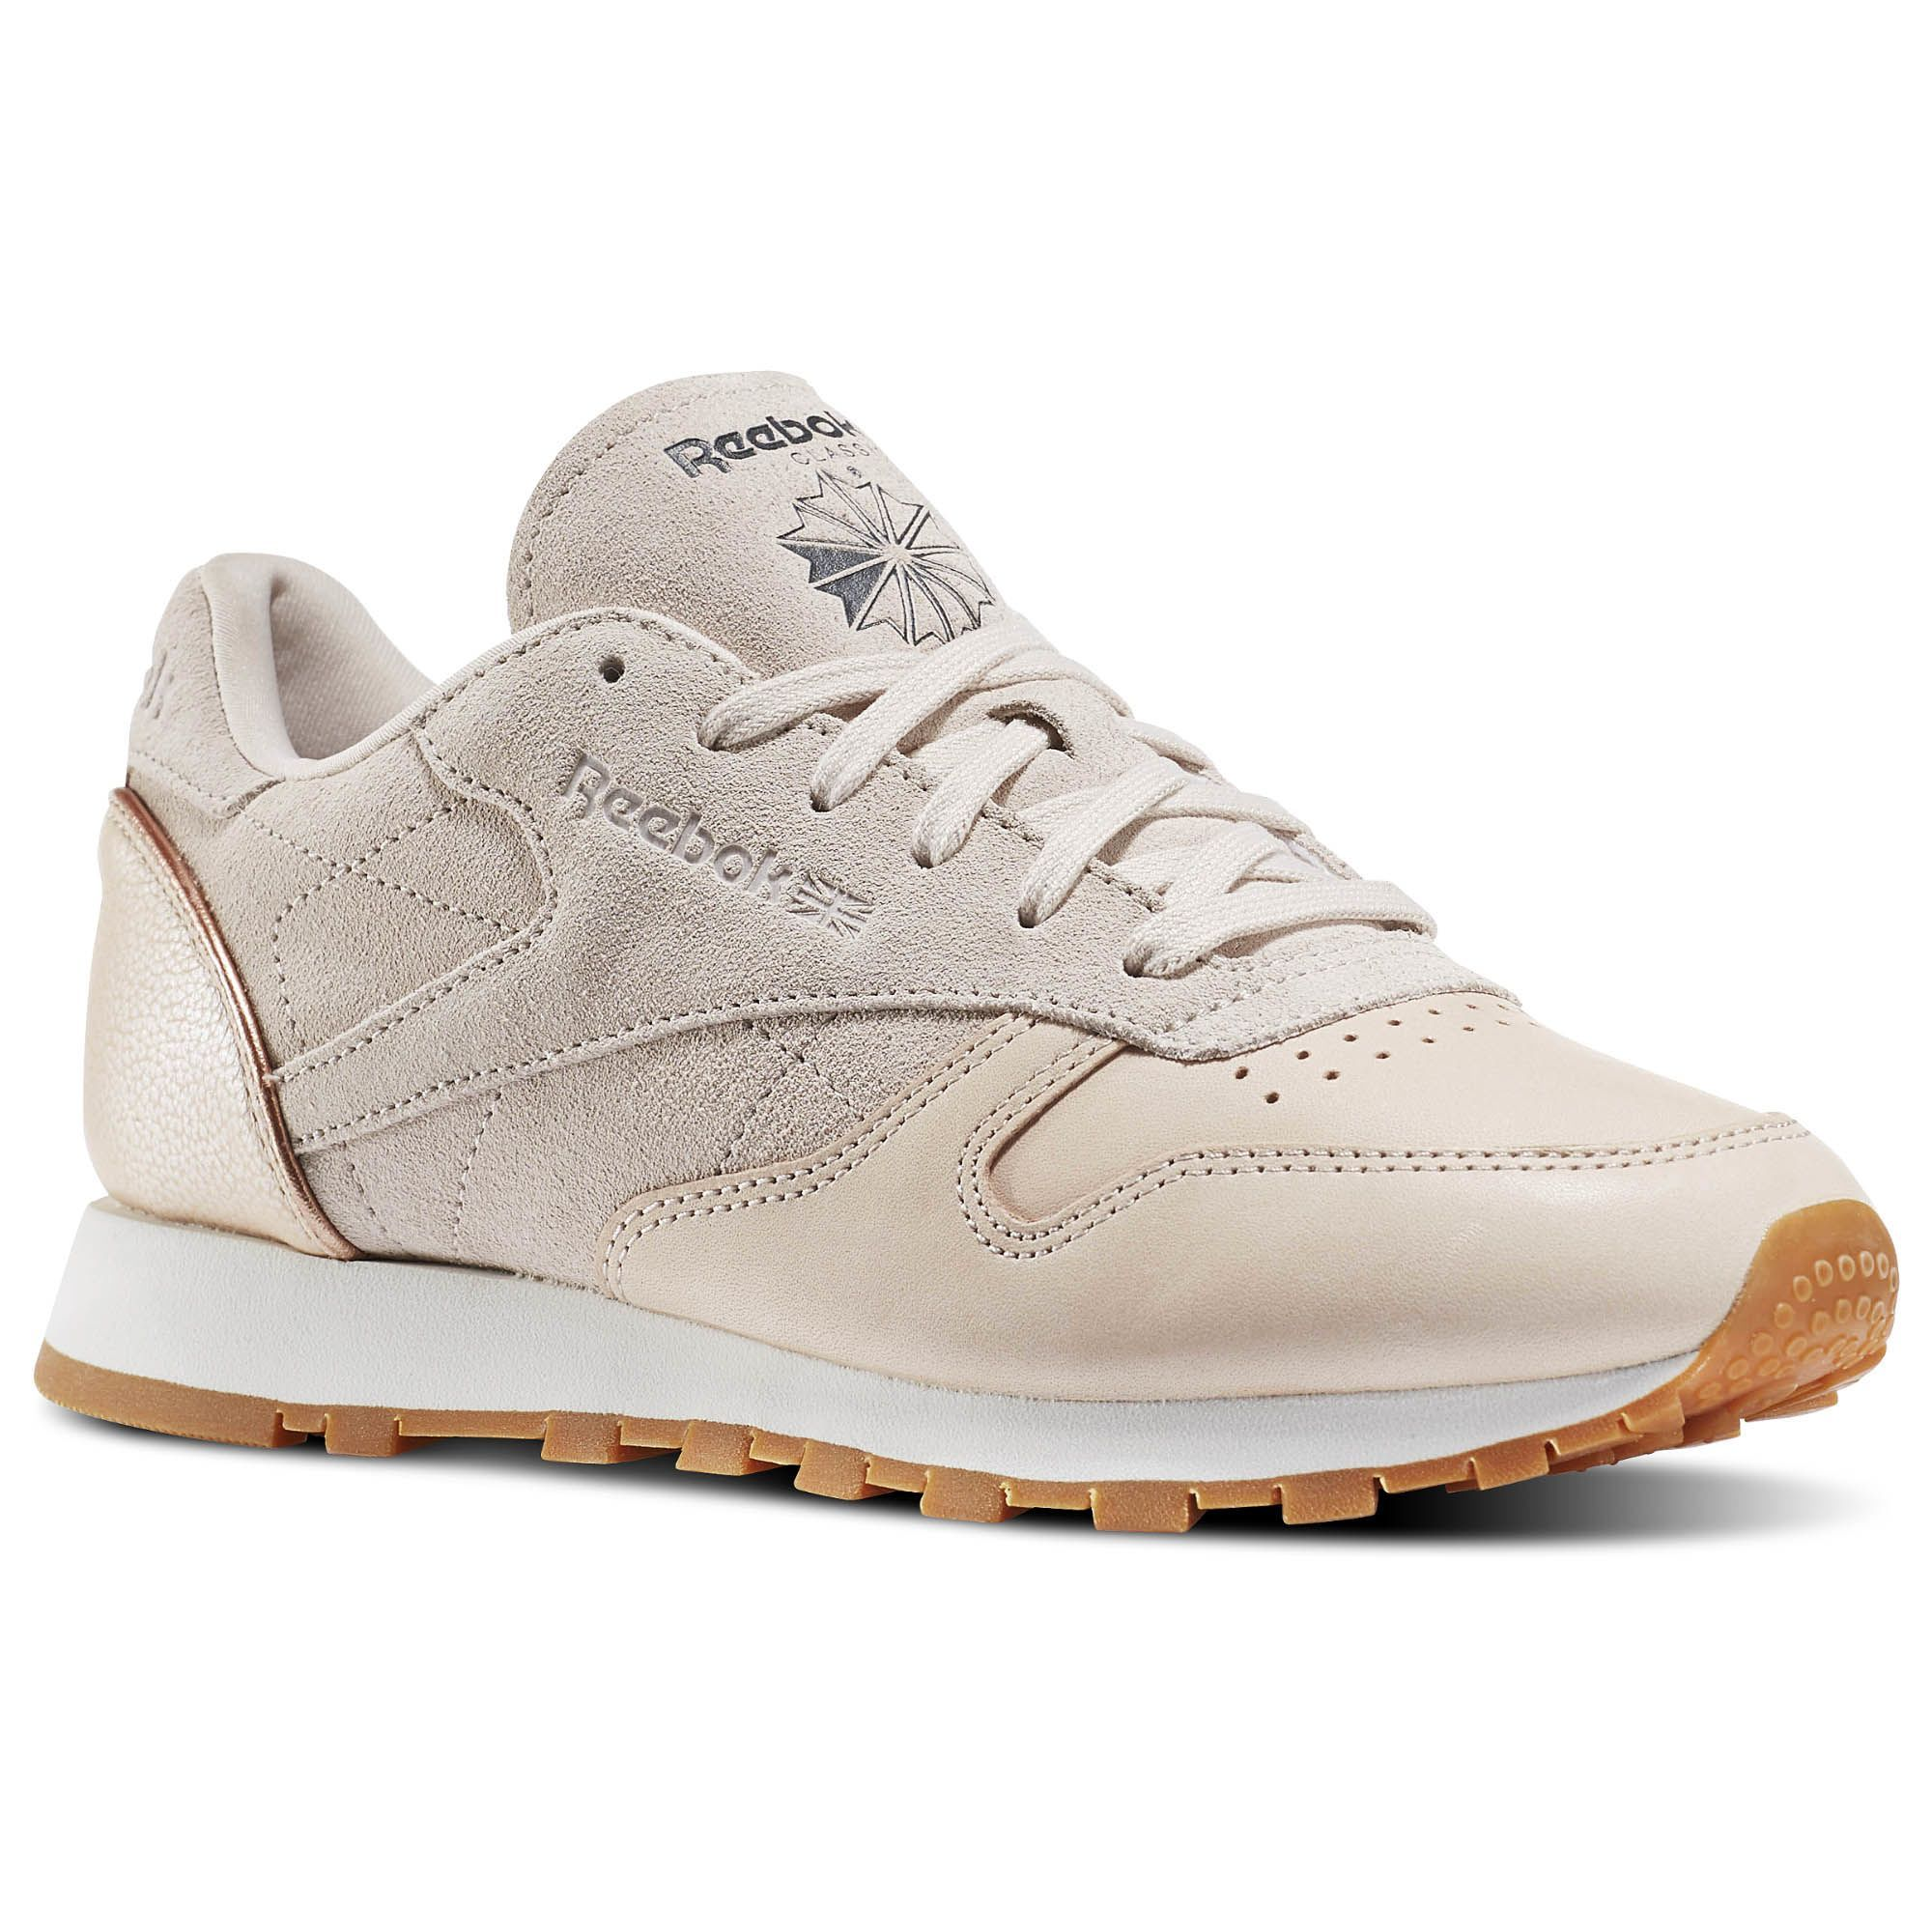 7e74afdde4148 Reebok - Tênis Classic Leather Golden Neut